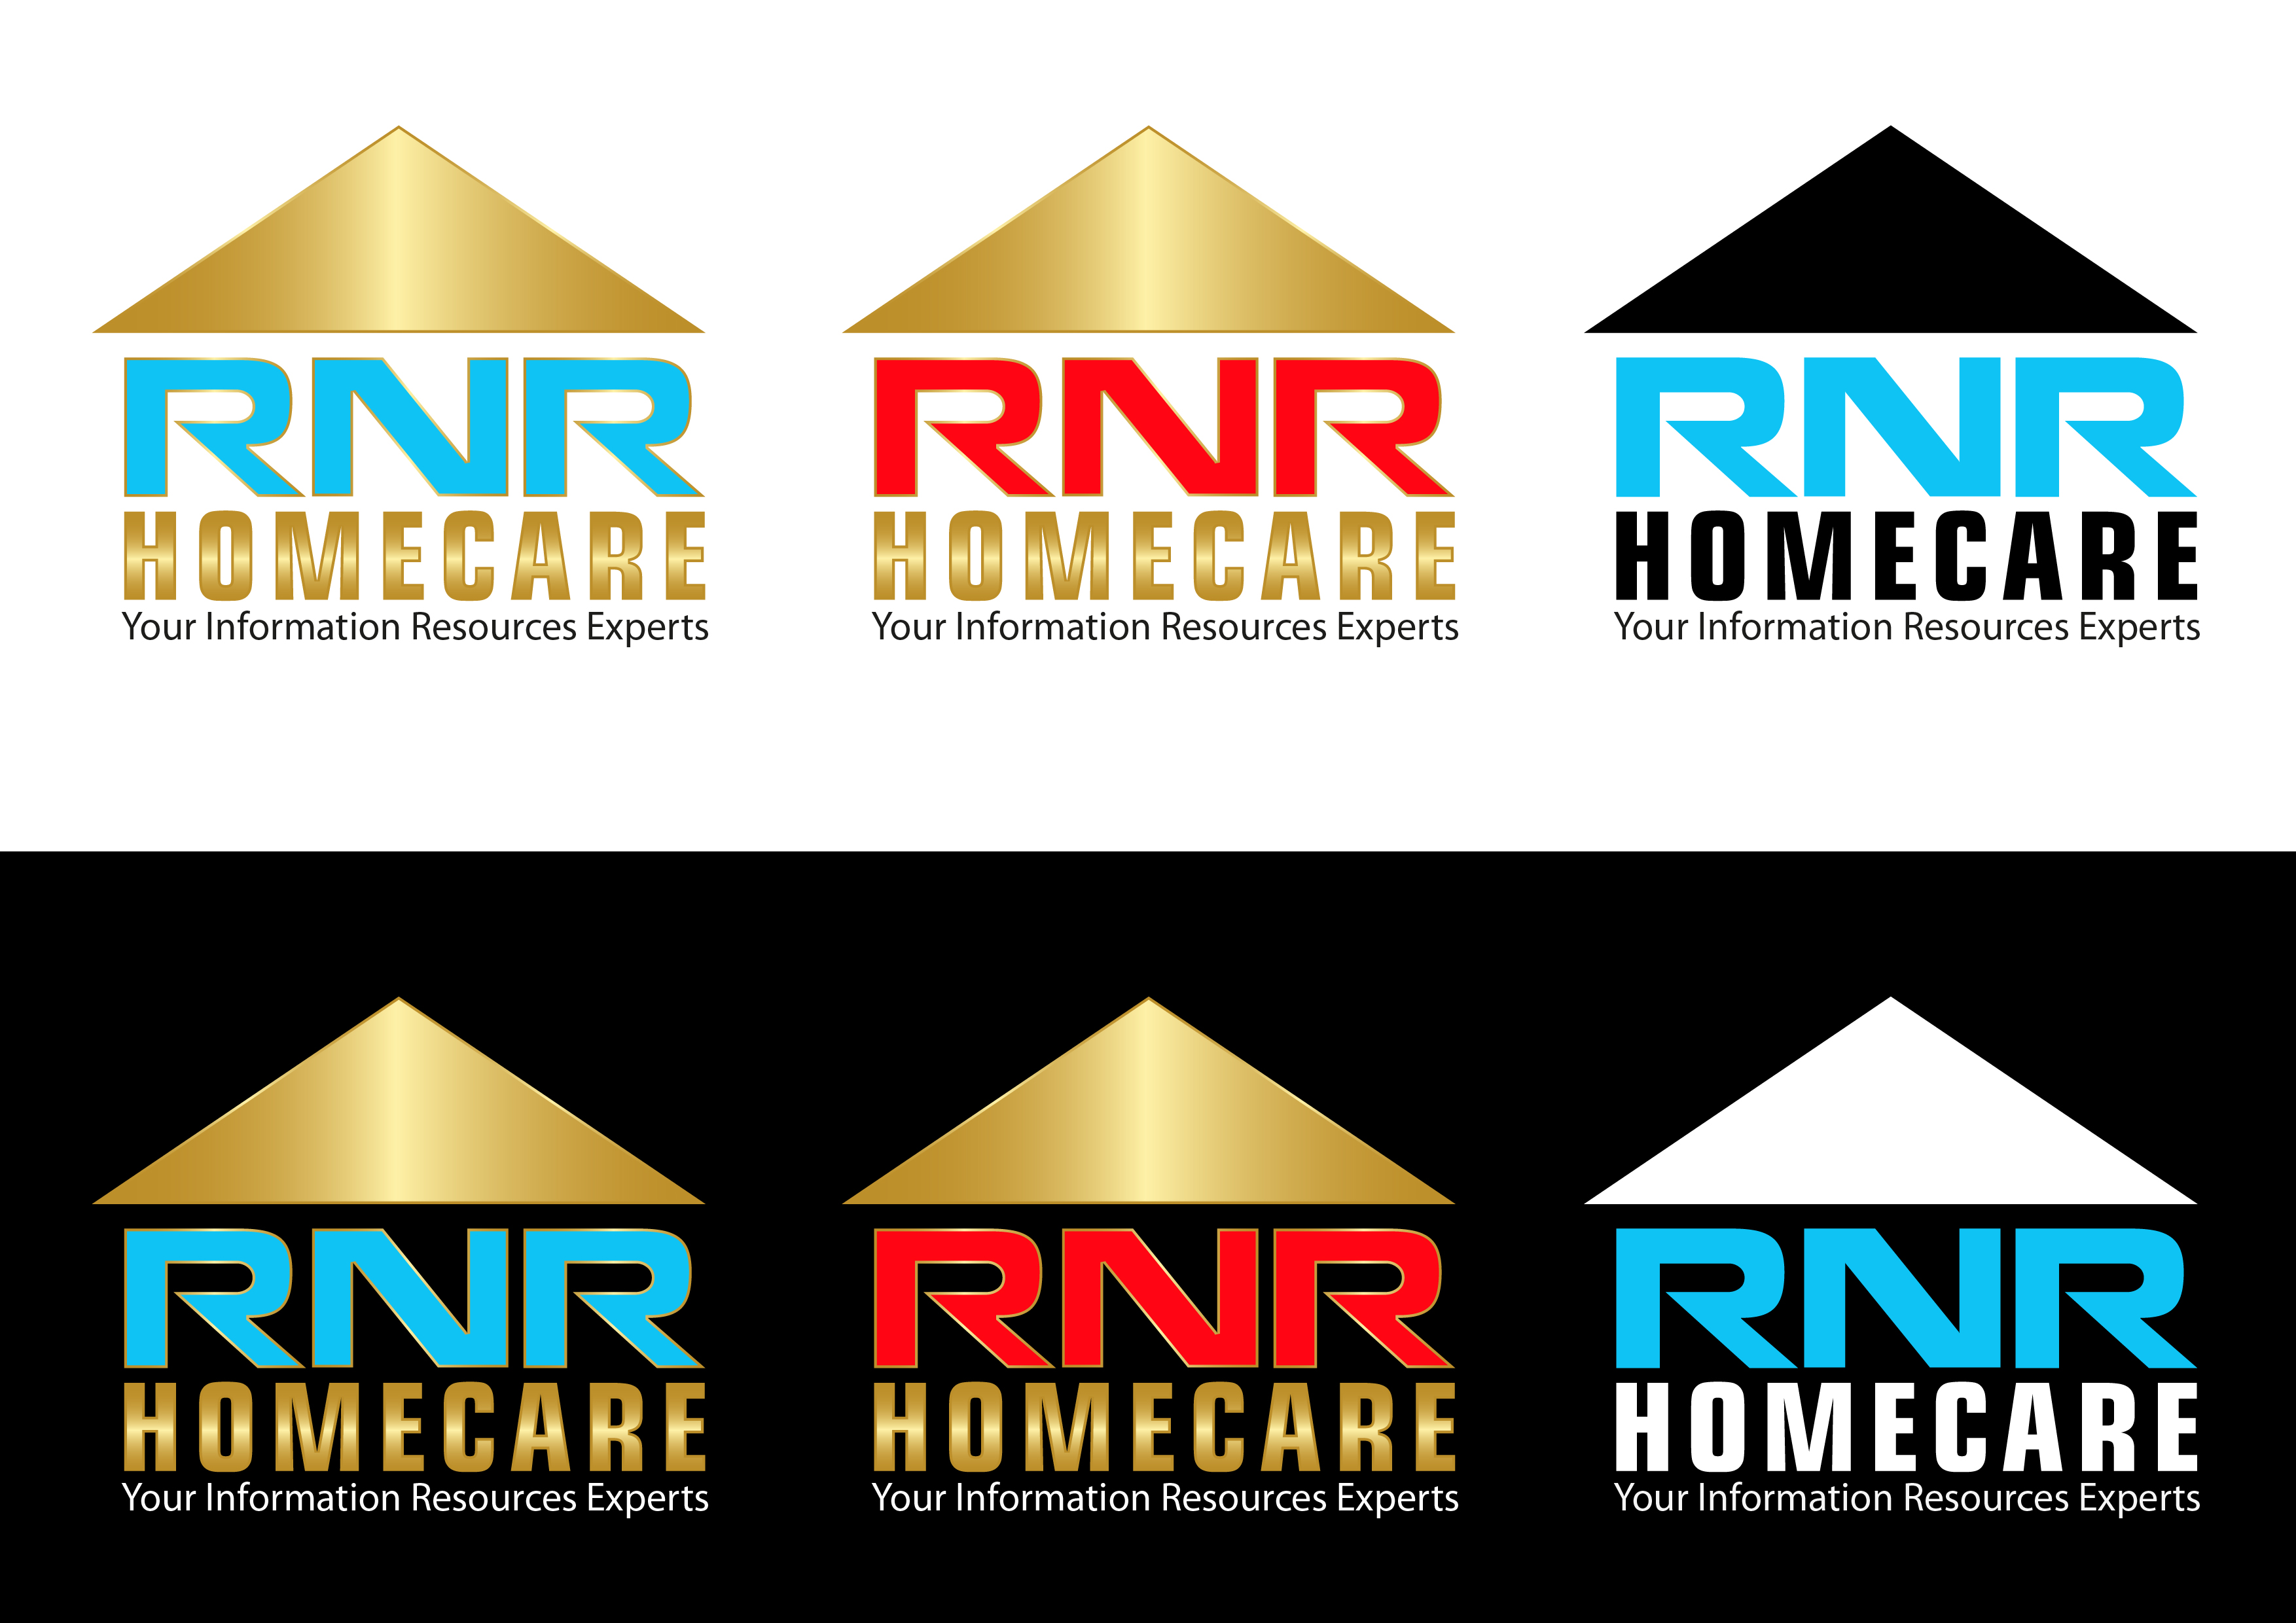 Logo Design by 3draw - Entry No. 32 in the Logo Design Contest Imaginative Logo Design for RNR HomeCare.